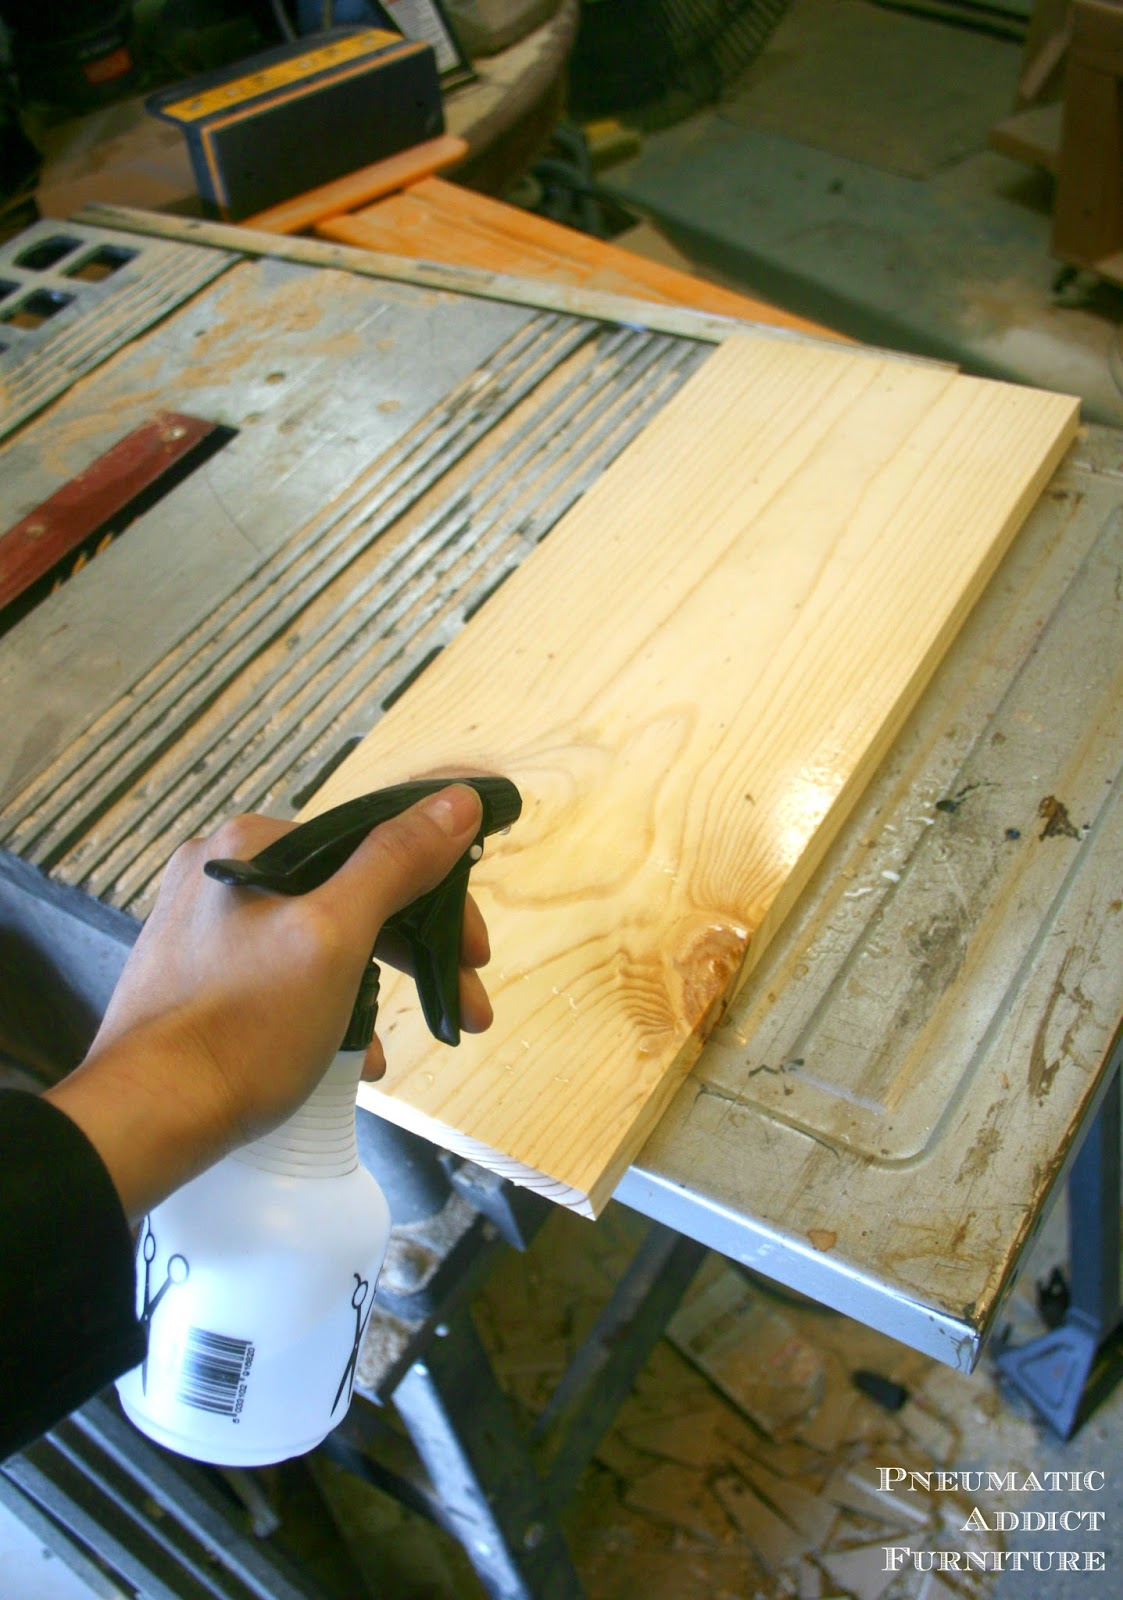 Pneumatic Addict : How to Get a Textured, Raised Grain on Wood Raising Grain